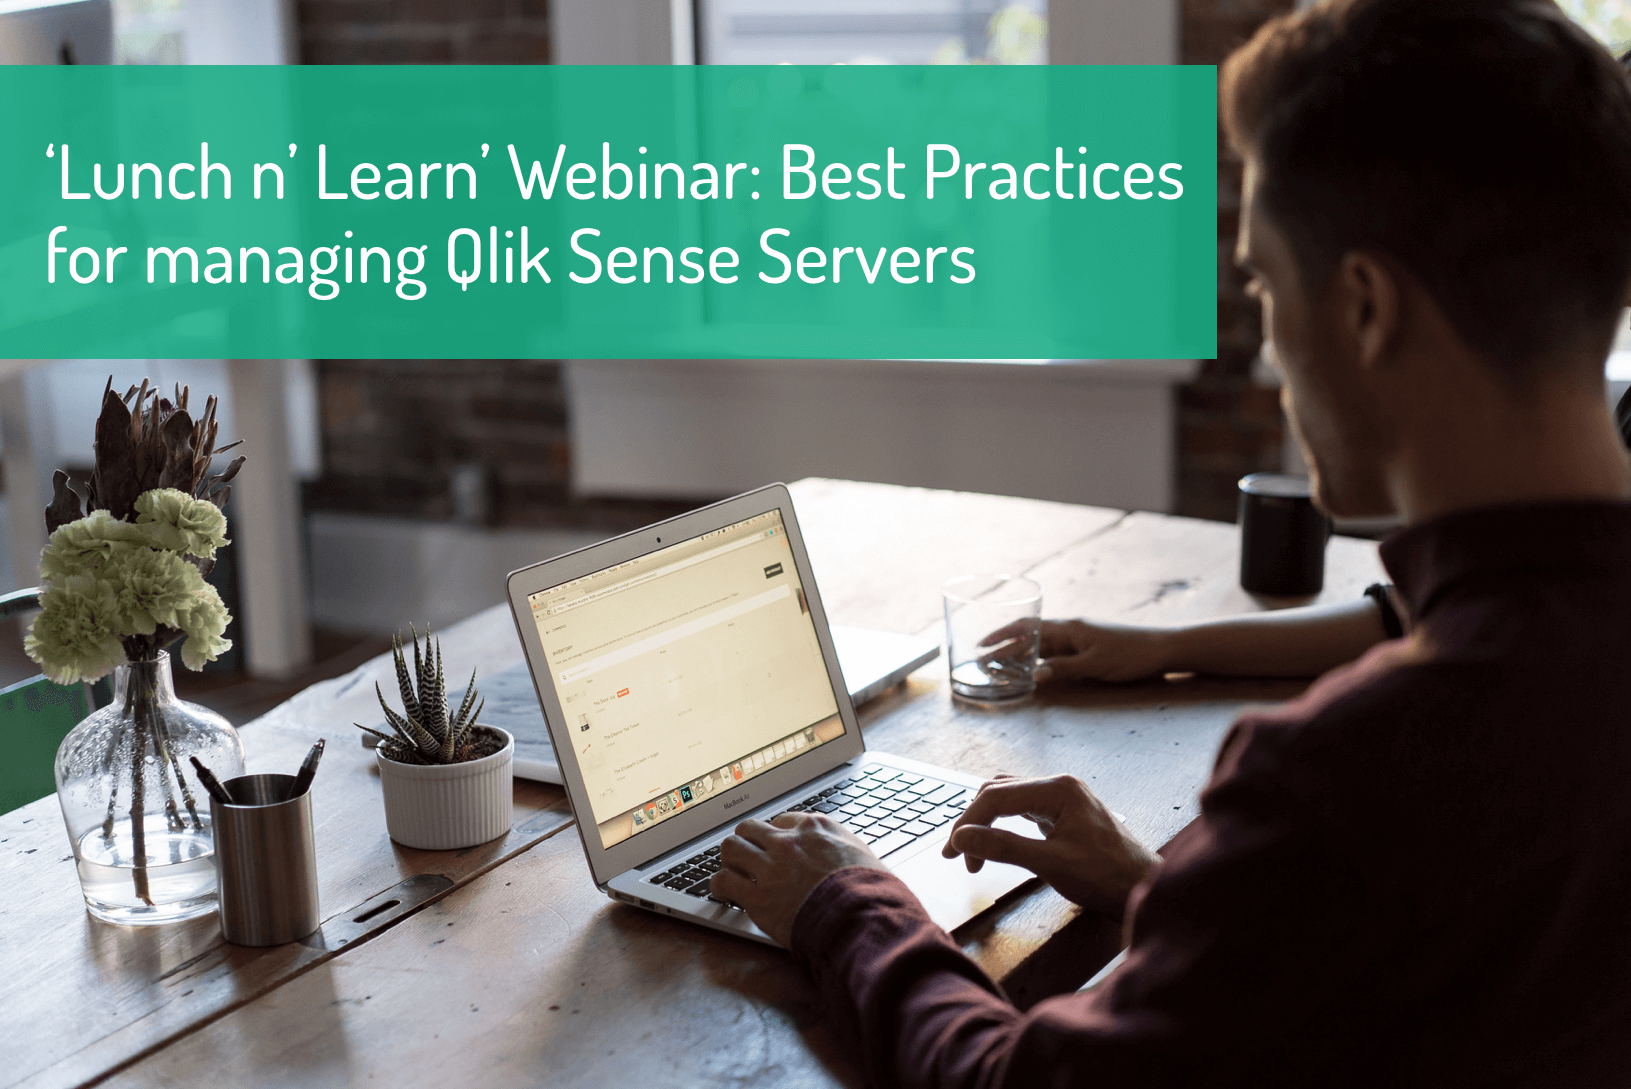 7 AUGUST 2019: Lunch n Learn Webinar: Best Practices for